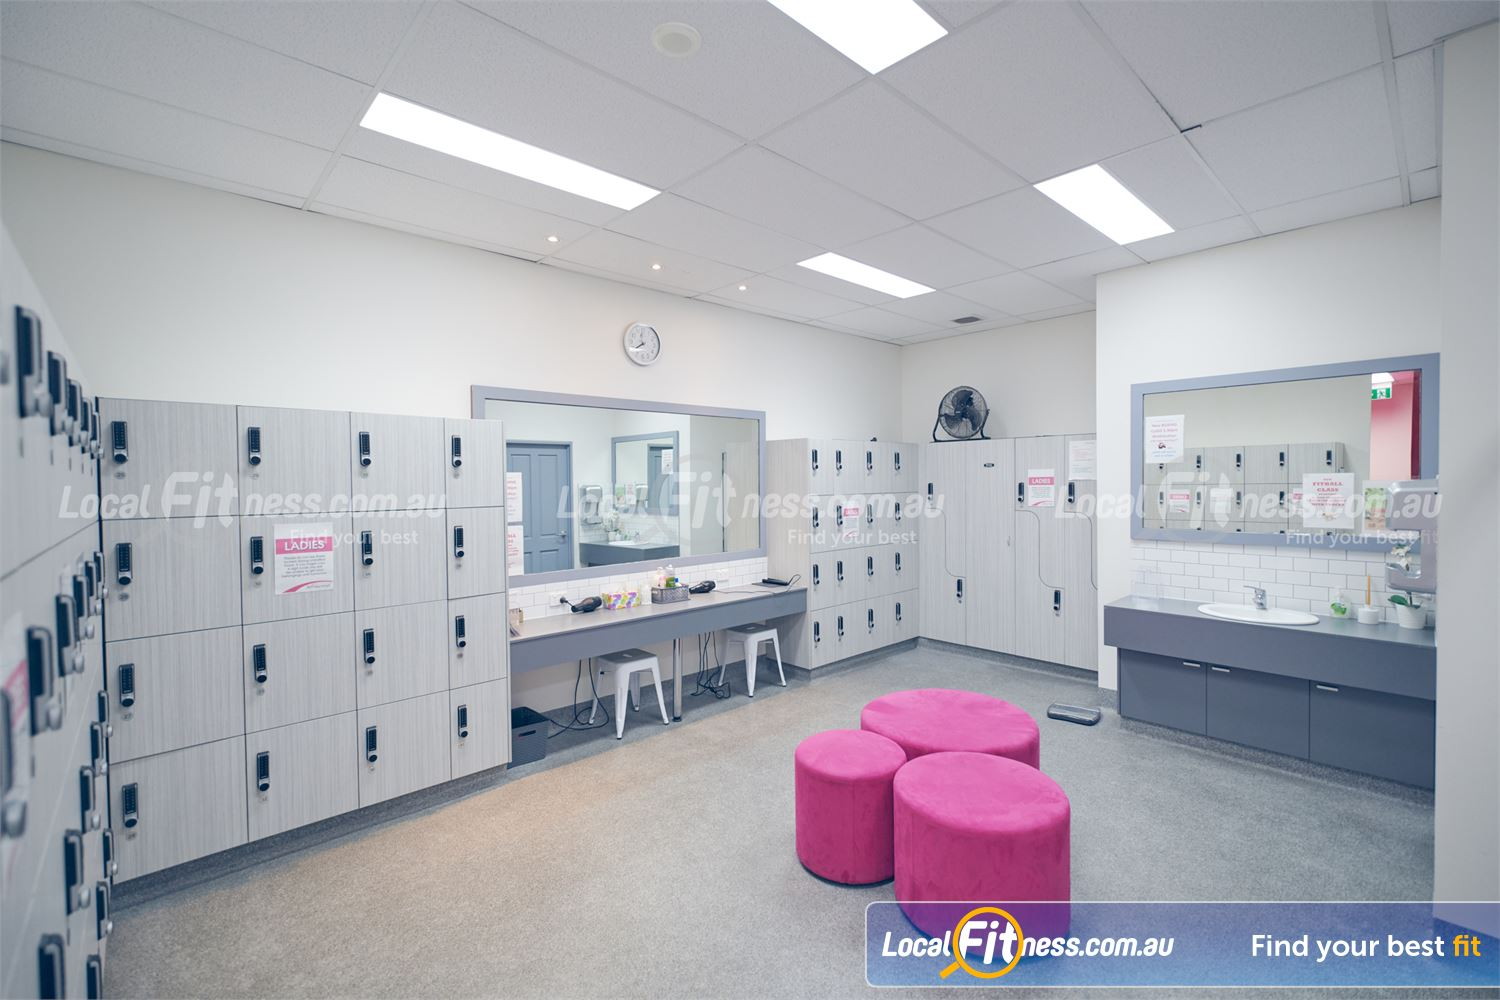 Fernwood Fitness Near Carlton North Our exclusive change rooms provide a Relaxing women's sanctuary.